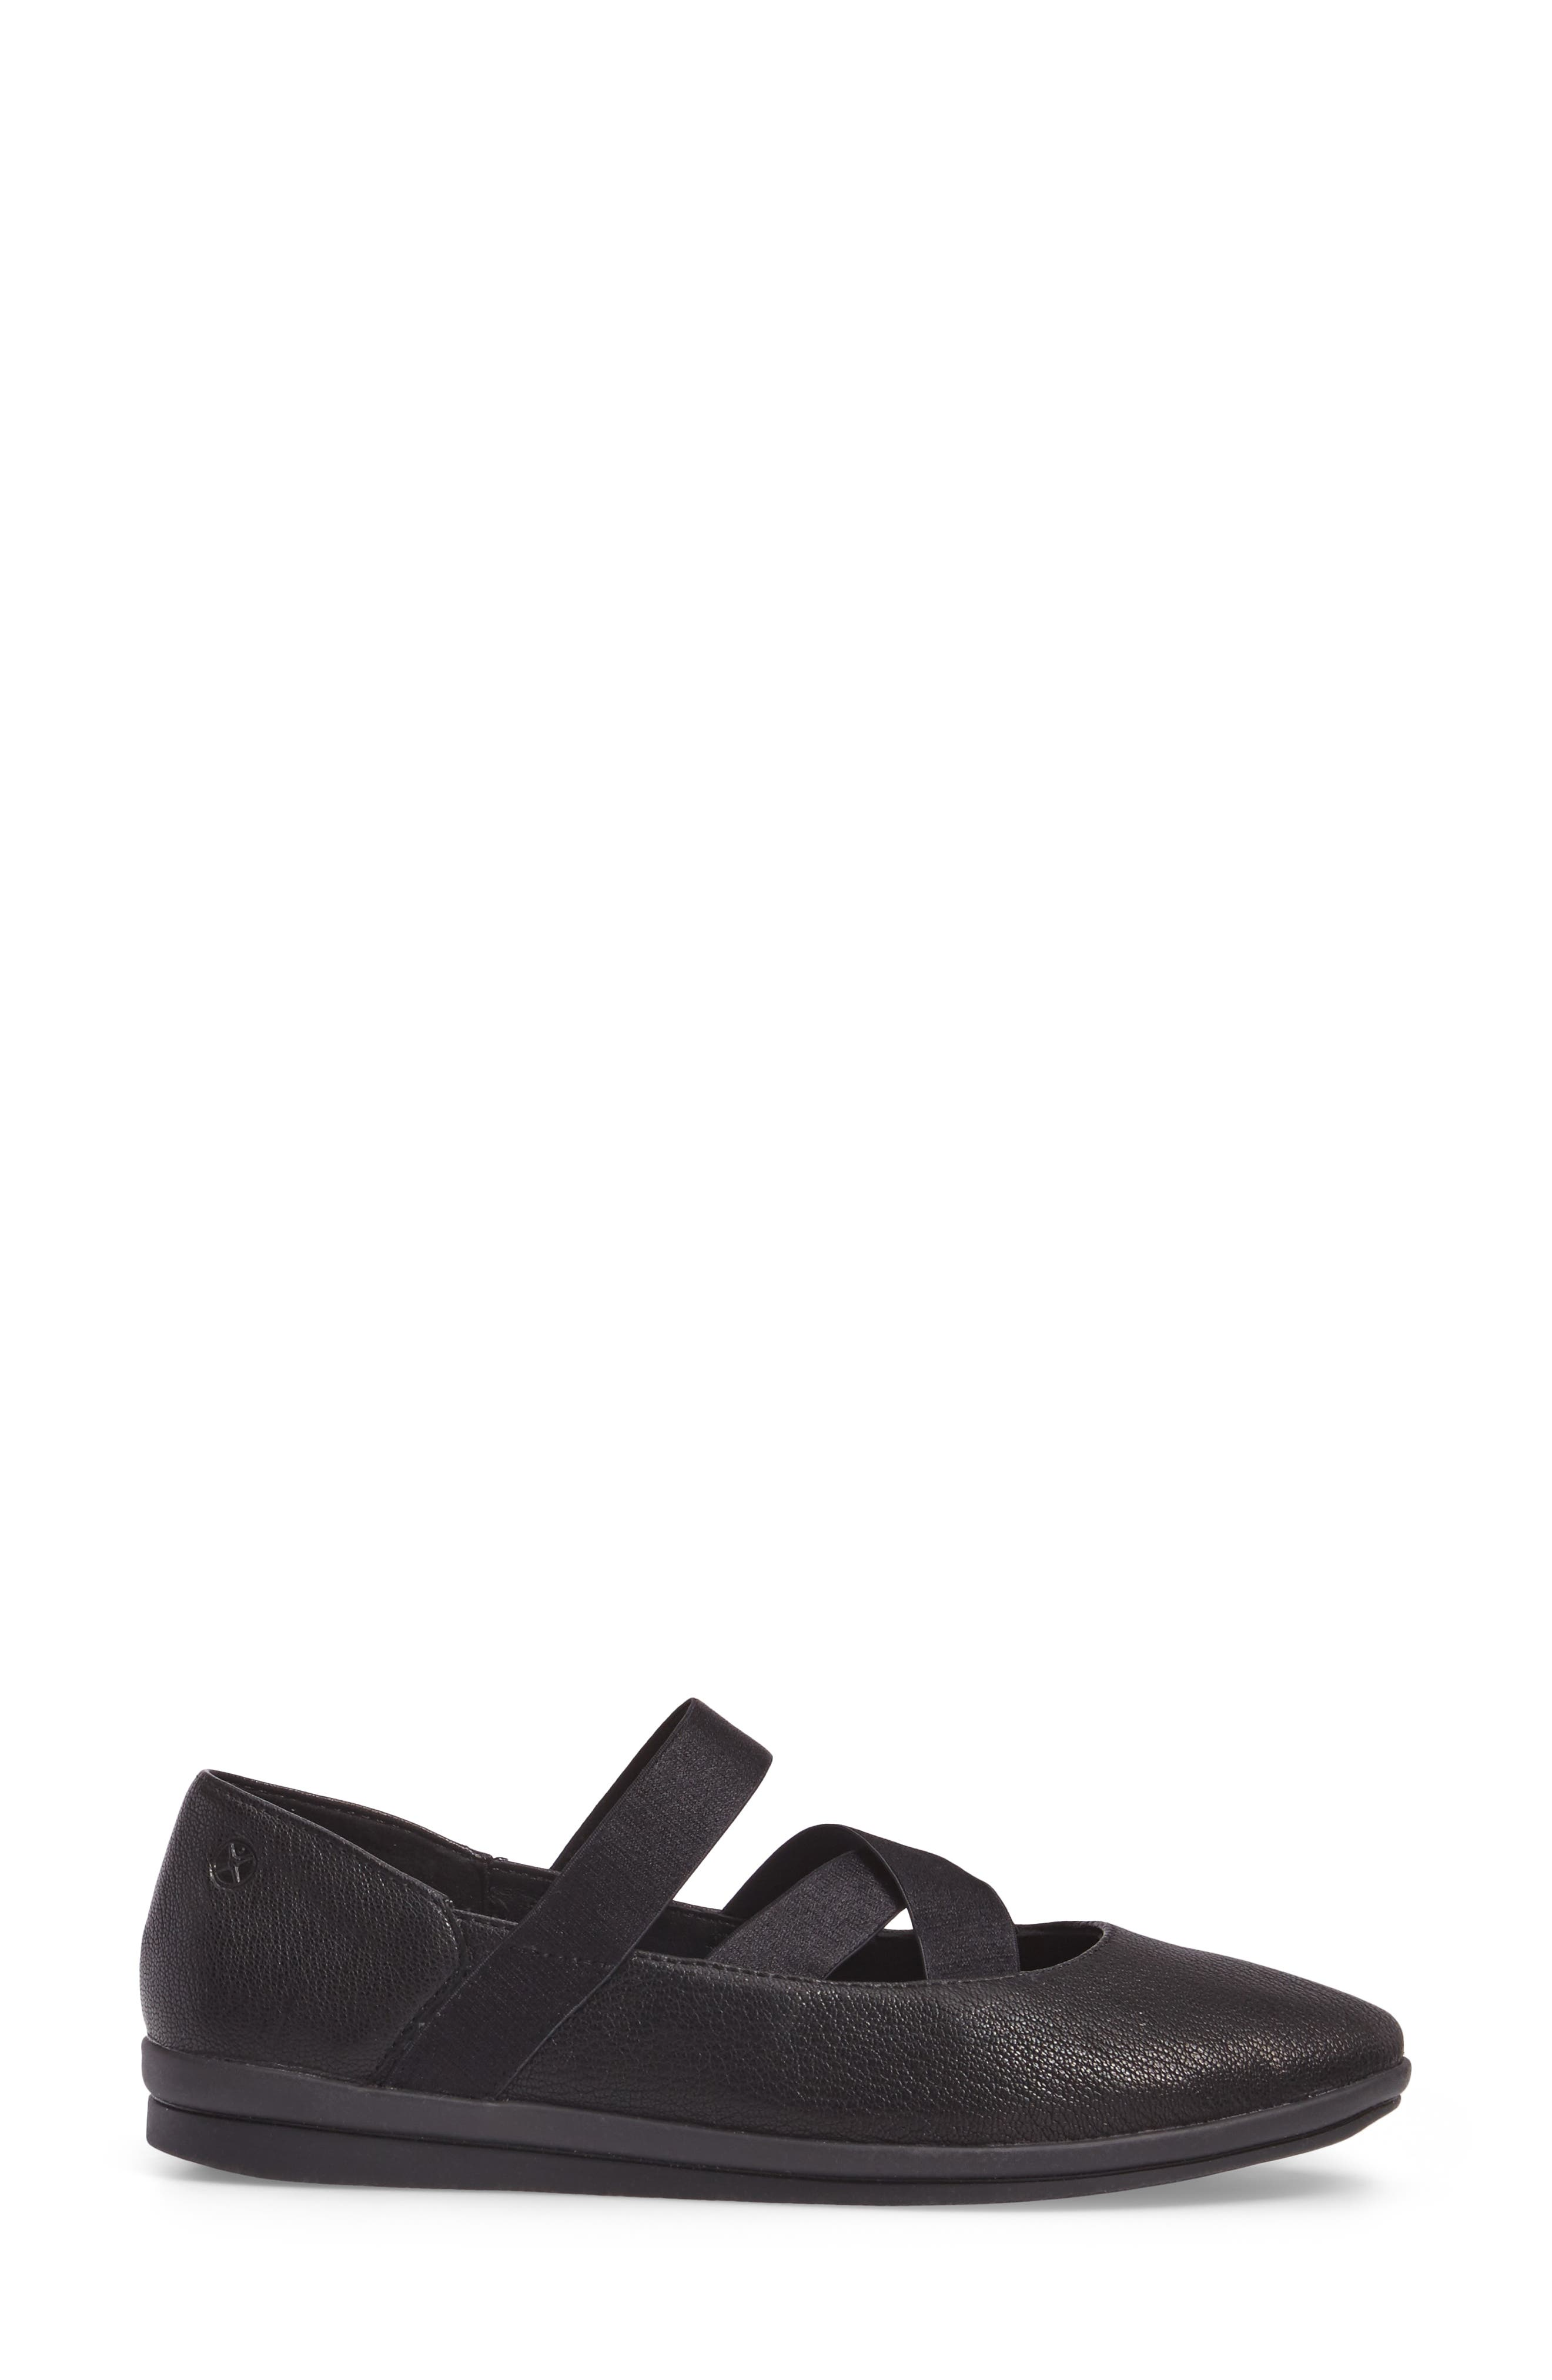 Meree Madrine Cross Strap Flat,                             Alternate thumbnail 13, color,